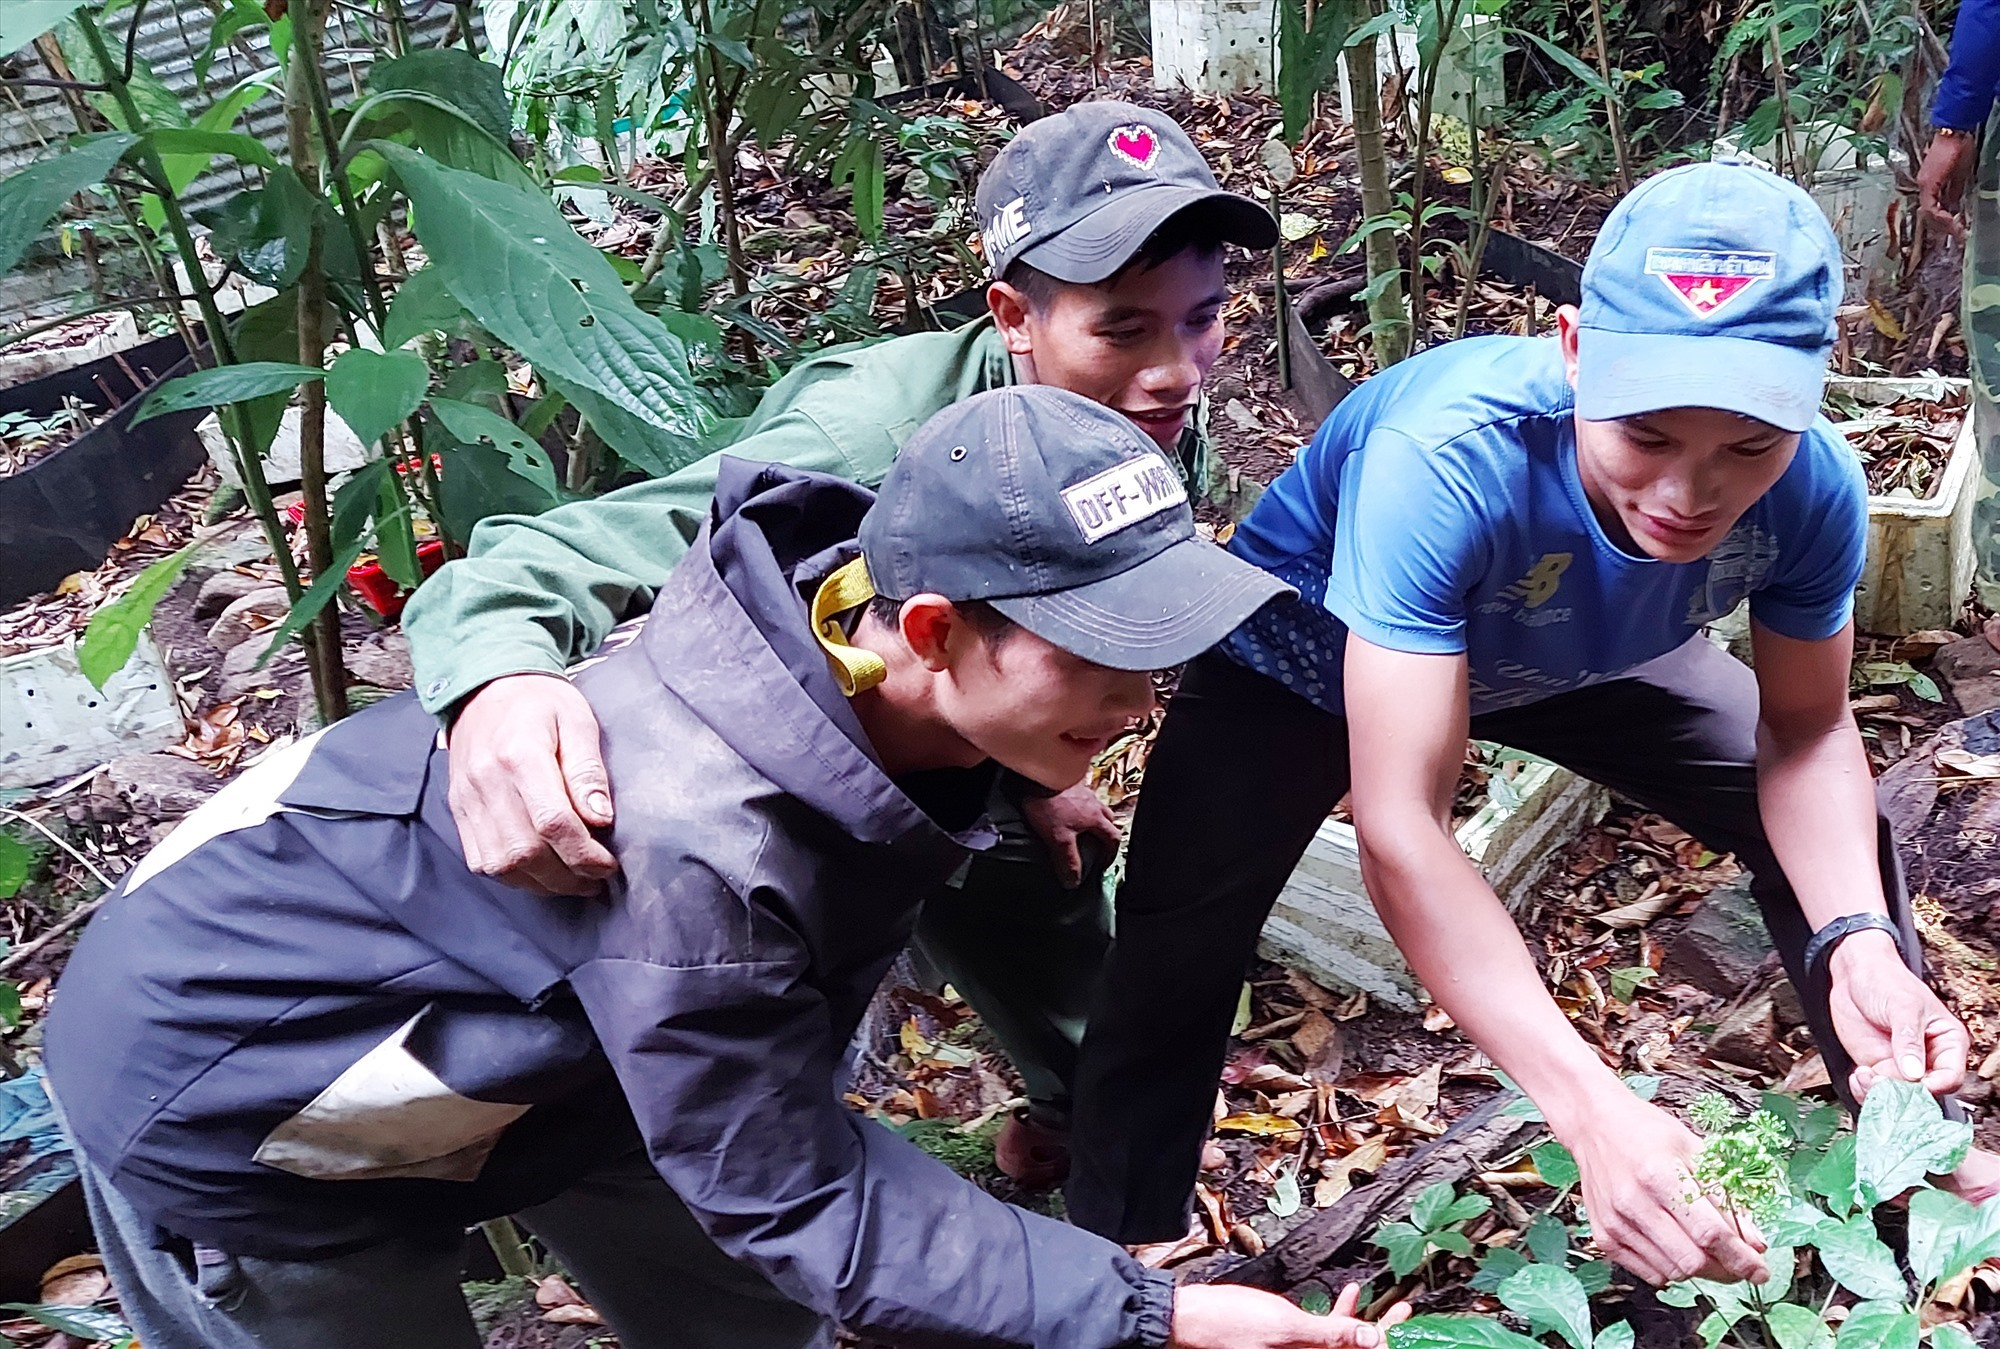 A group of youths planting Ngoc Linh ginseng in Tra Linh